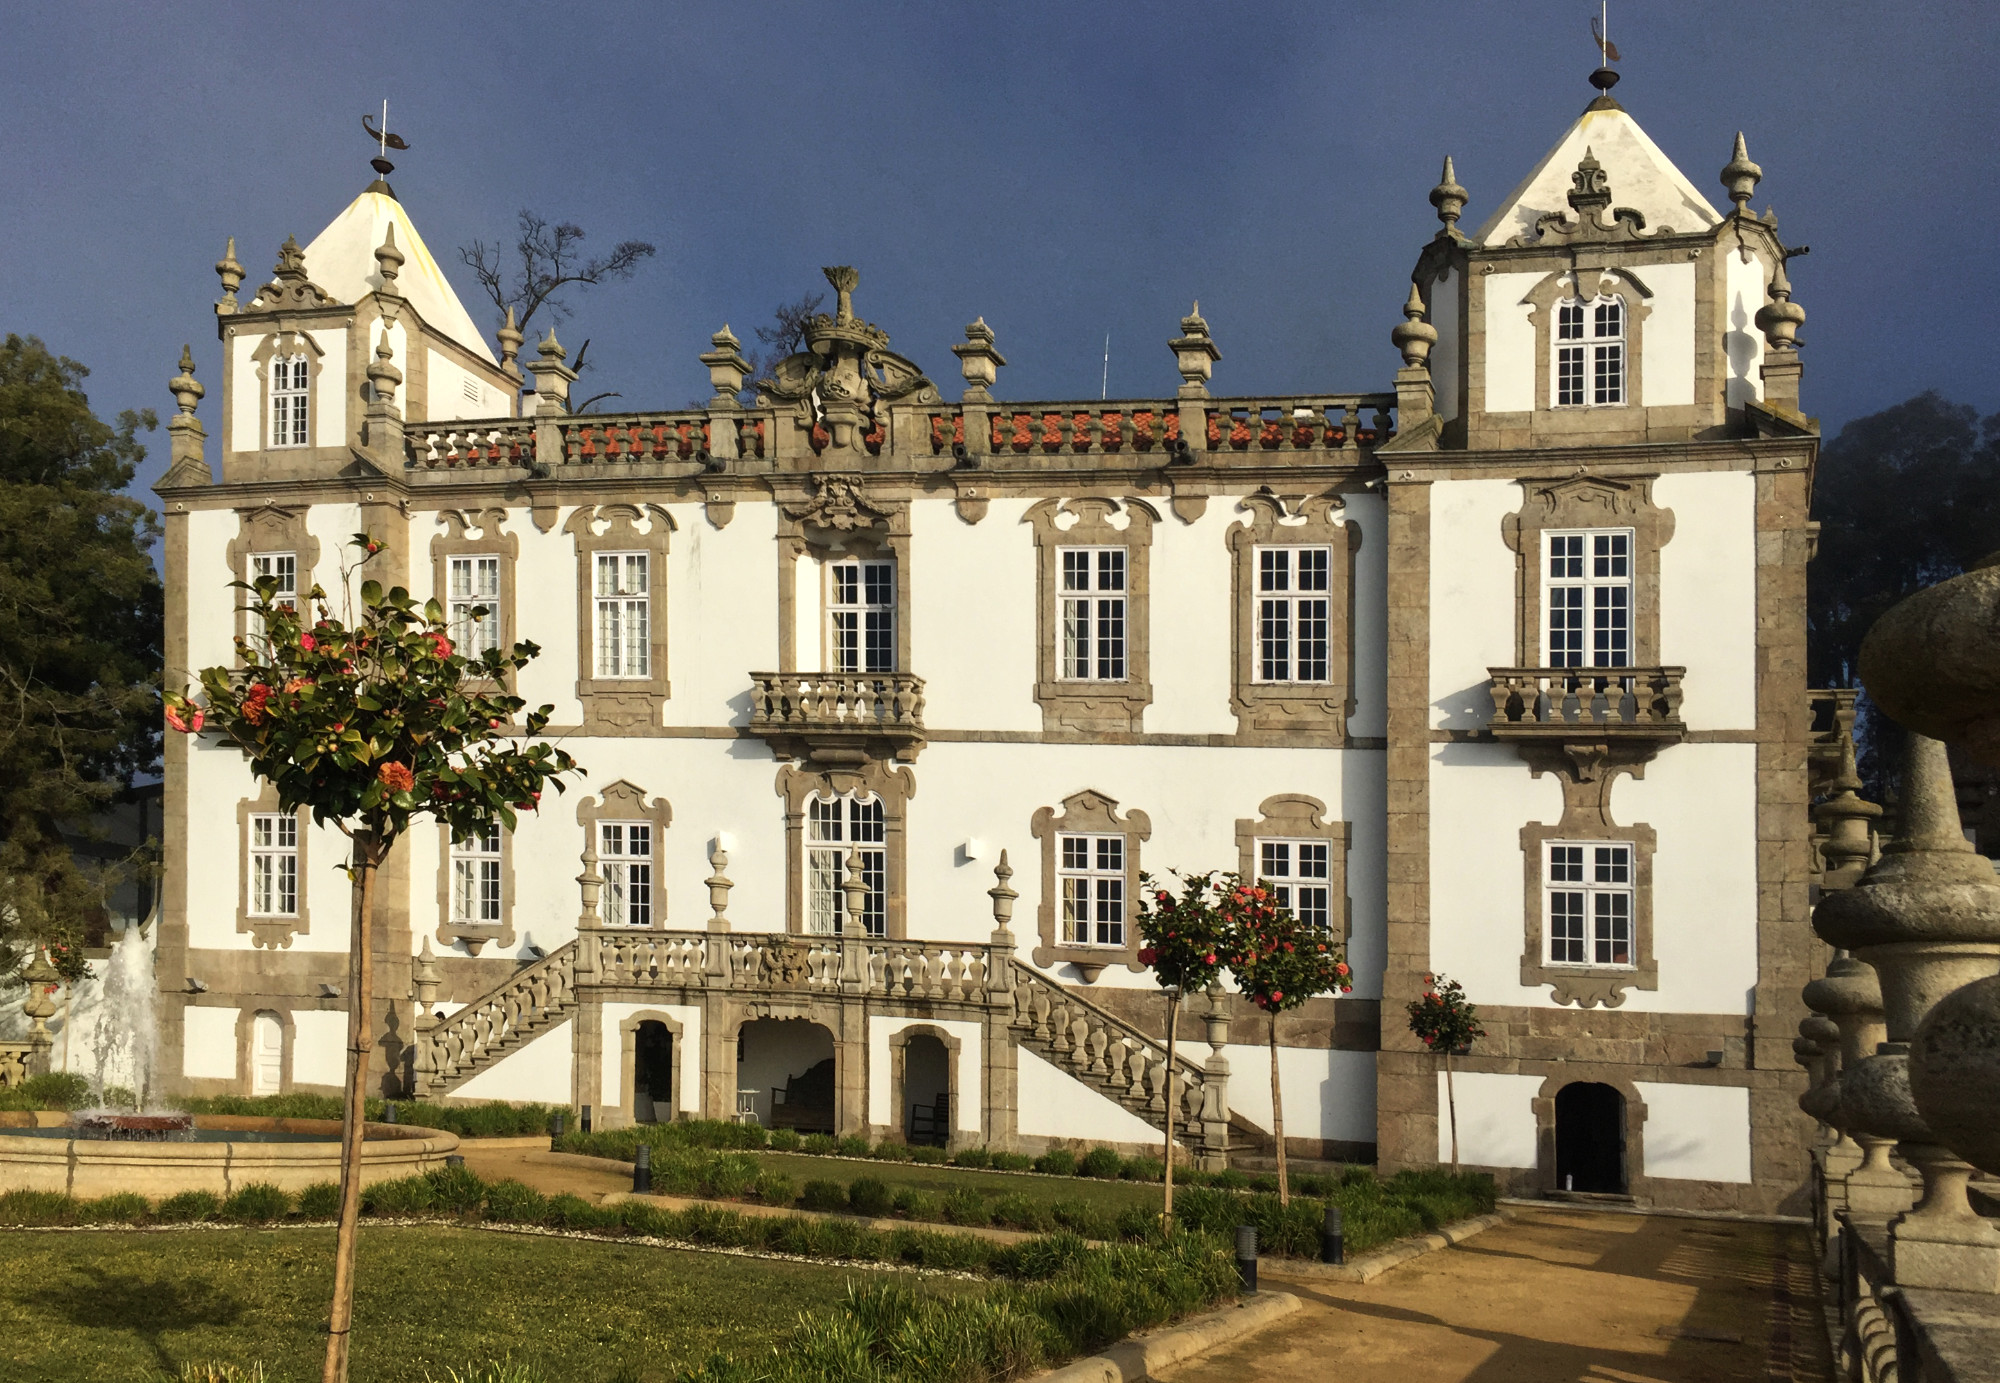 The façade of the Palácio de Freixo facing the River Douro